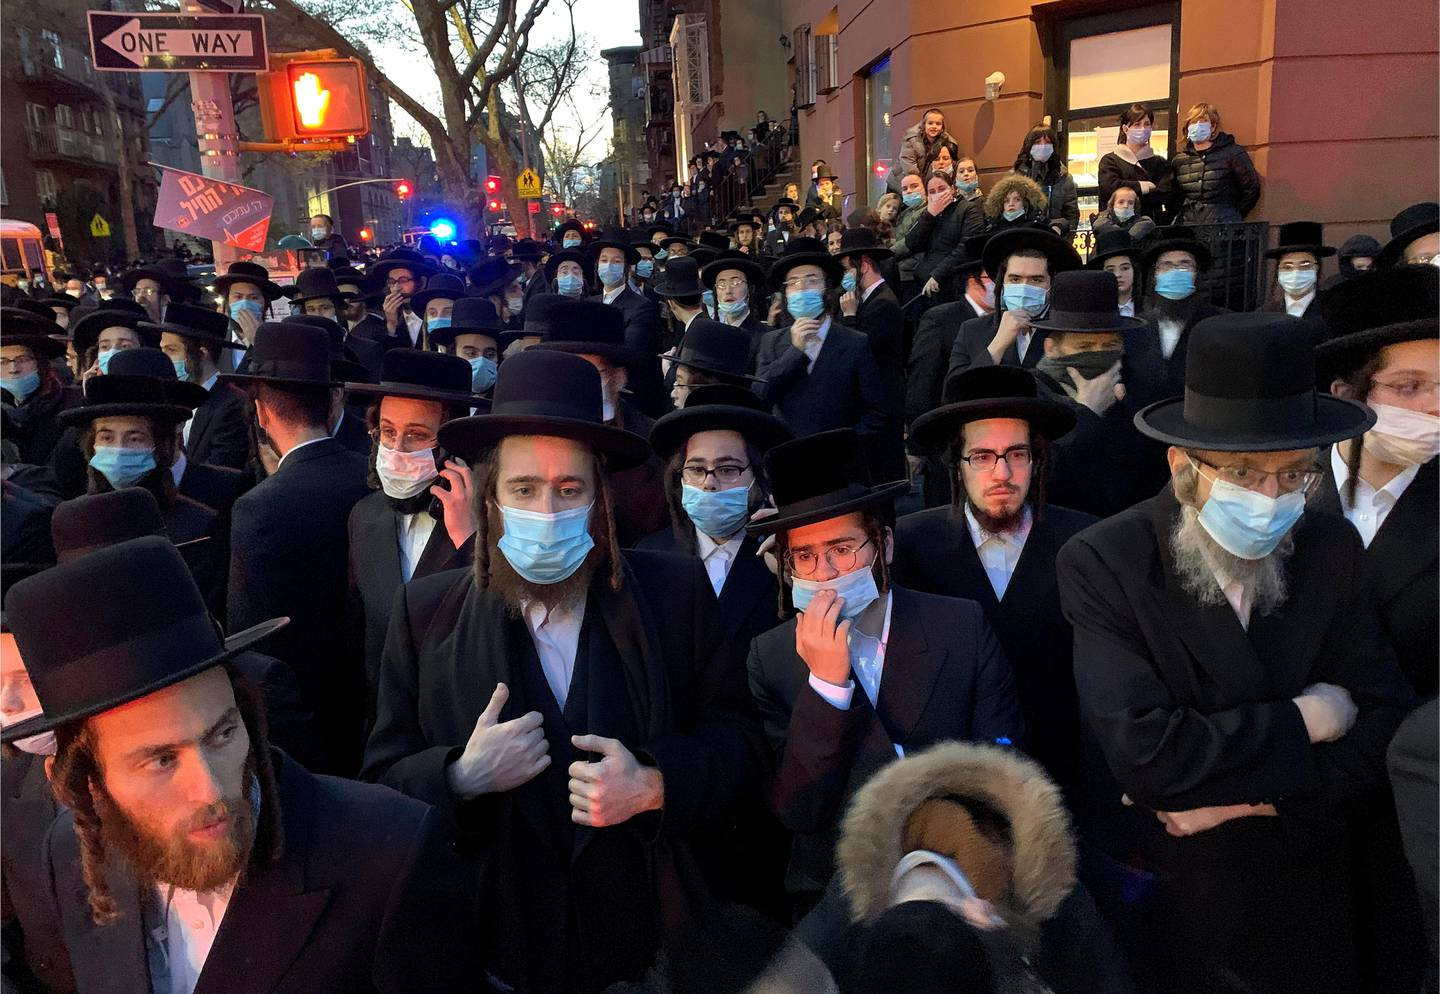 """Hundreds of mourners gather in the Brooklyn borough of New York, Tuesday, April 28, 2020, to observe a funeral for Rabbi Chaim Mertz, a Hasidic Orthodox leader whose death was reportedly tied to the coronavirus. The stress of the coronavirus' toll on New York City's Orthodox Jews was brought to the fore on Wednesday after Mayor Bill de Blasio chastised """"the Jewish community"""" following the breakup of the large funeral that flouted public health orders.(Peter Gerber via AP)"""